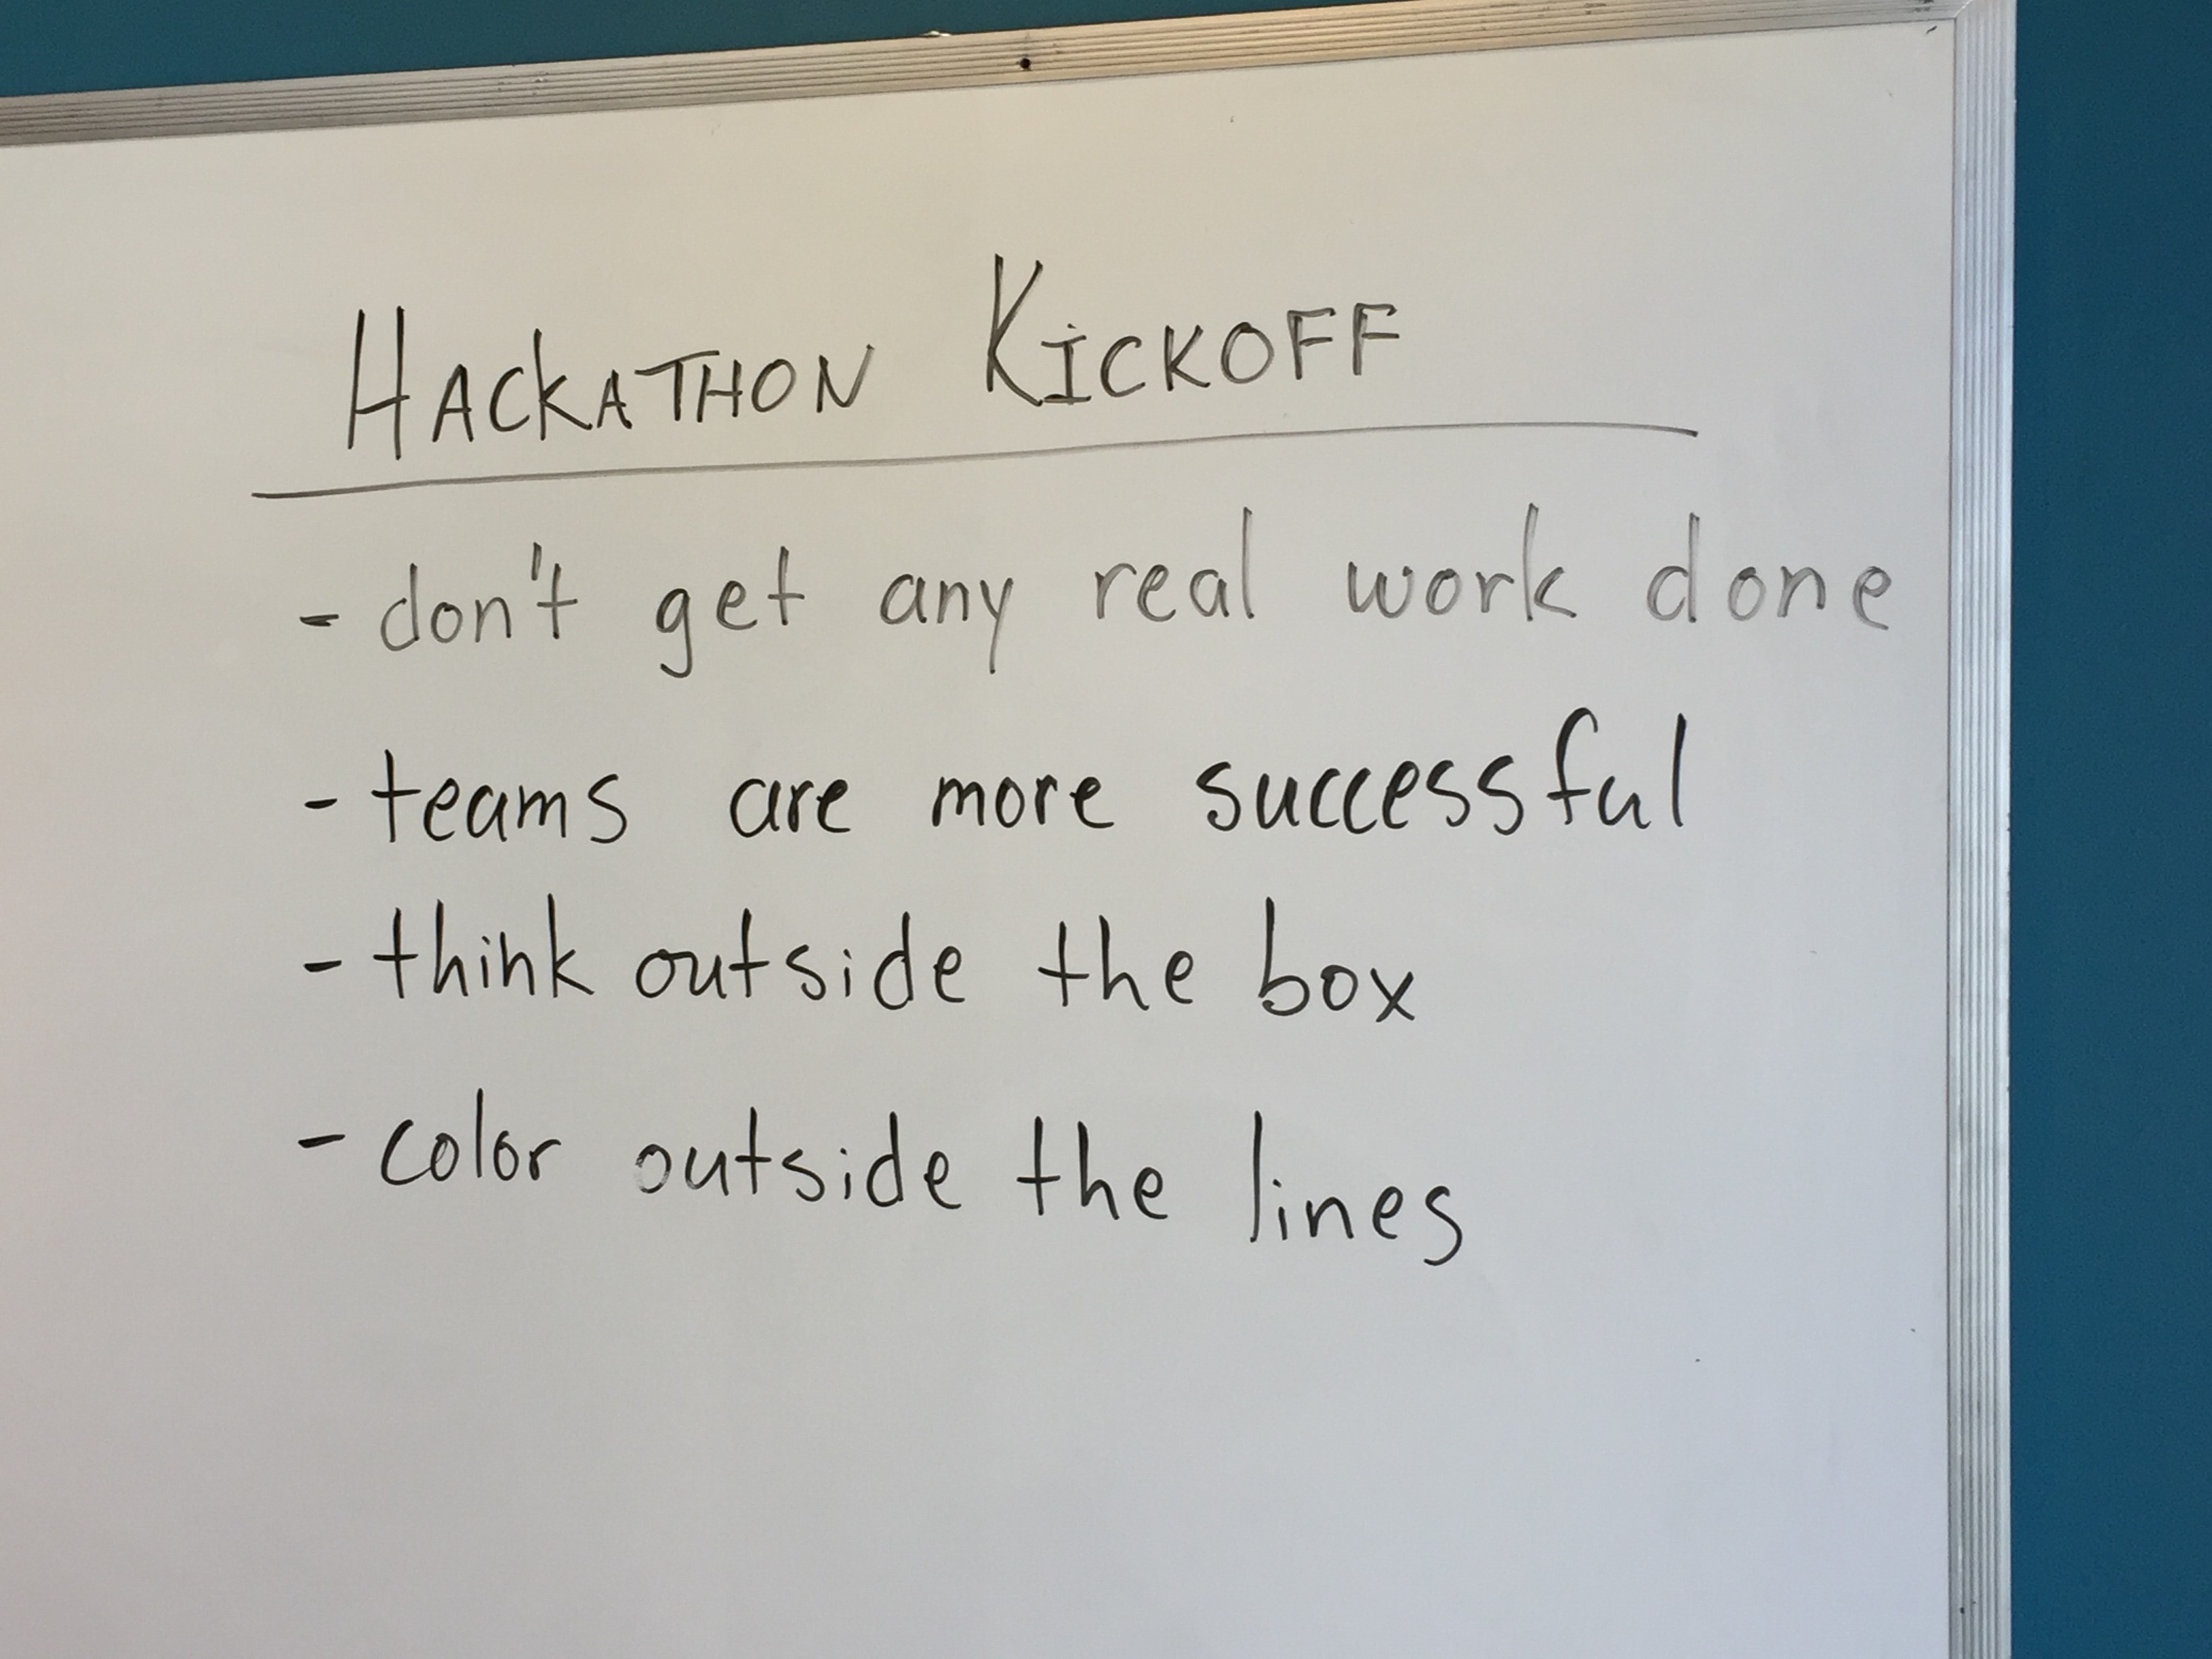 Numenta Internal Hacakthon Rules